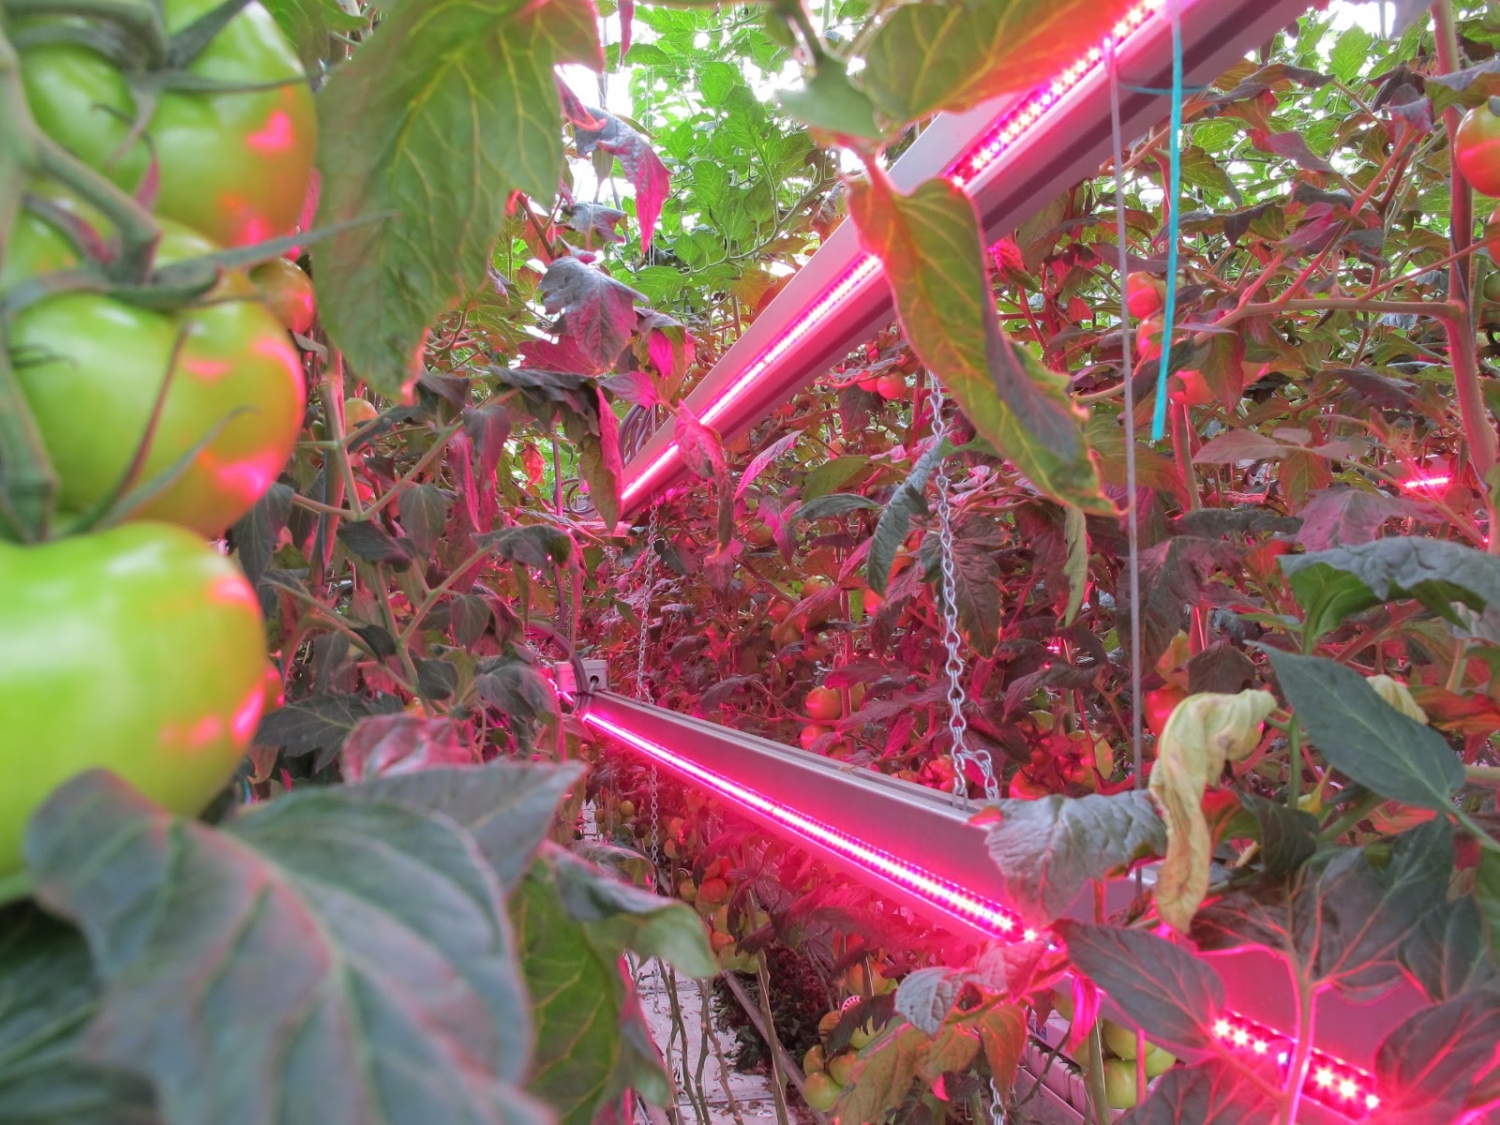 LED lights in commercial greenhouse